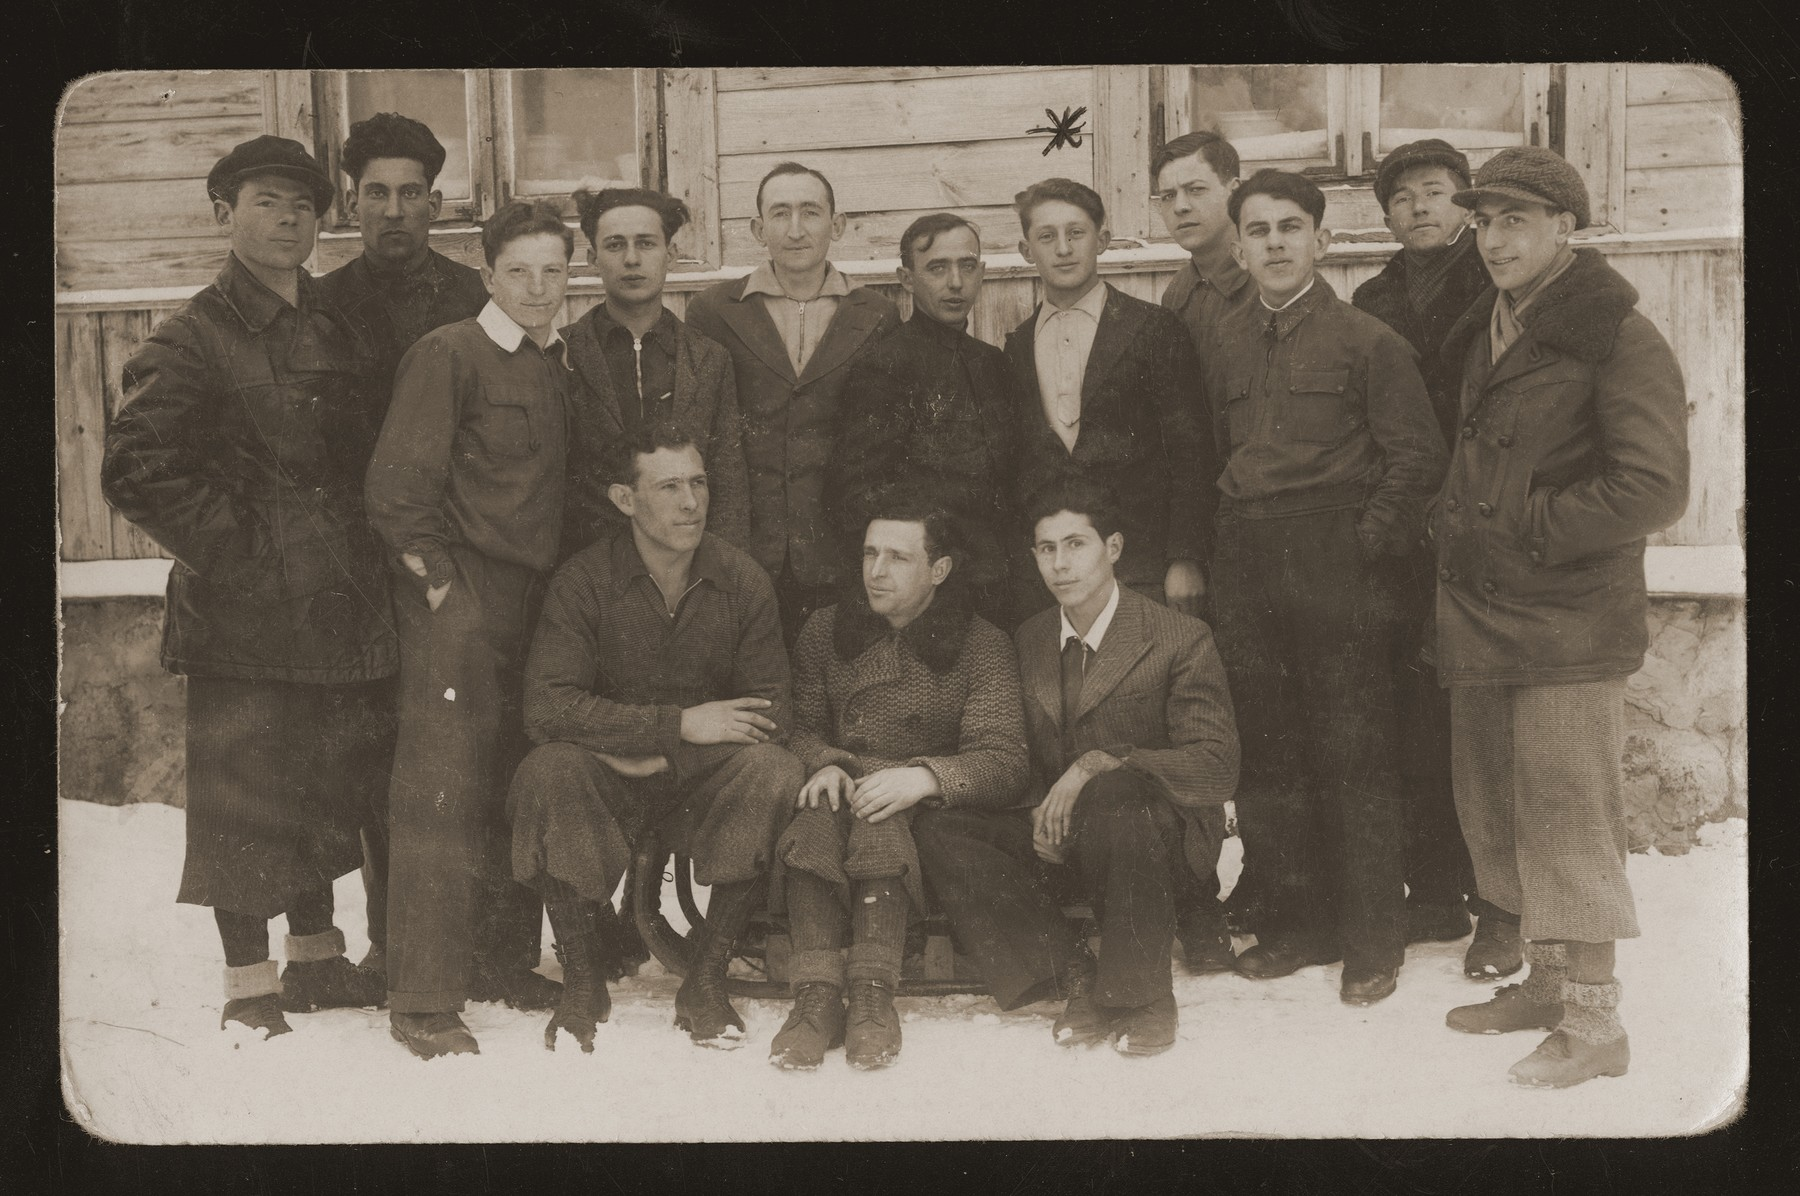 Members of a Zionist hachshara near Vilna all of whom were killed by the Germans in 1942.  Among those pictured is Zalman Gejdenson.